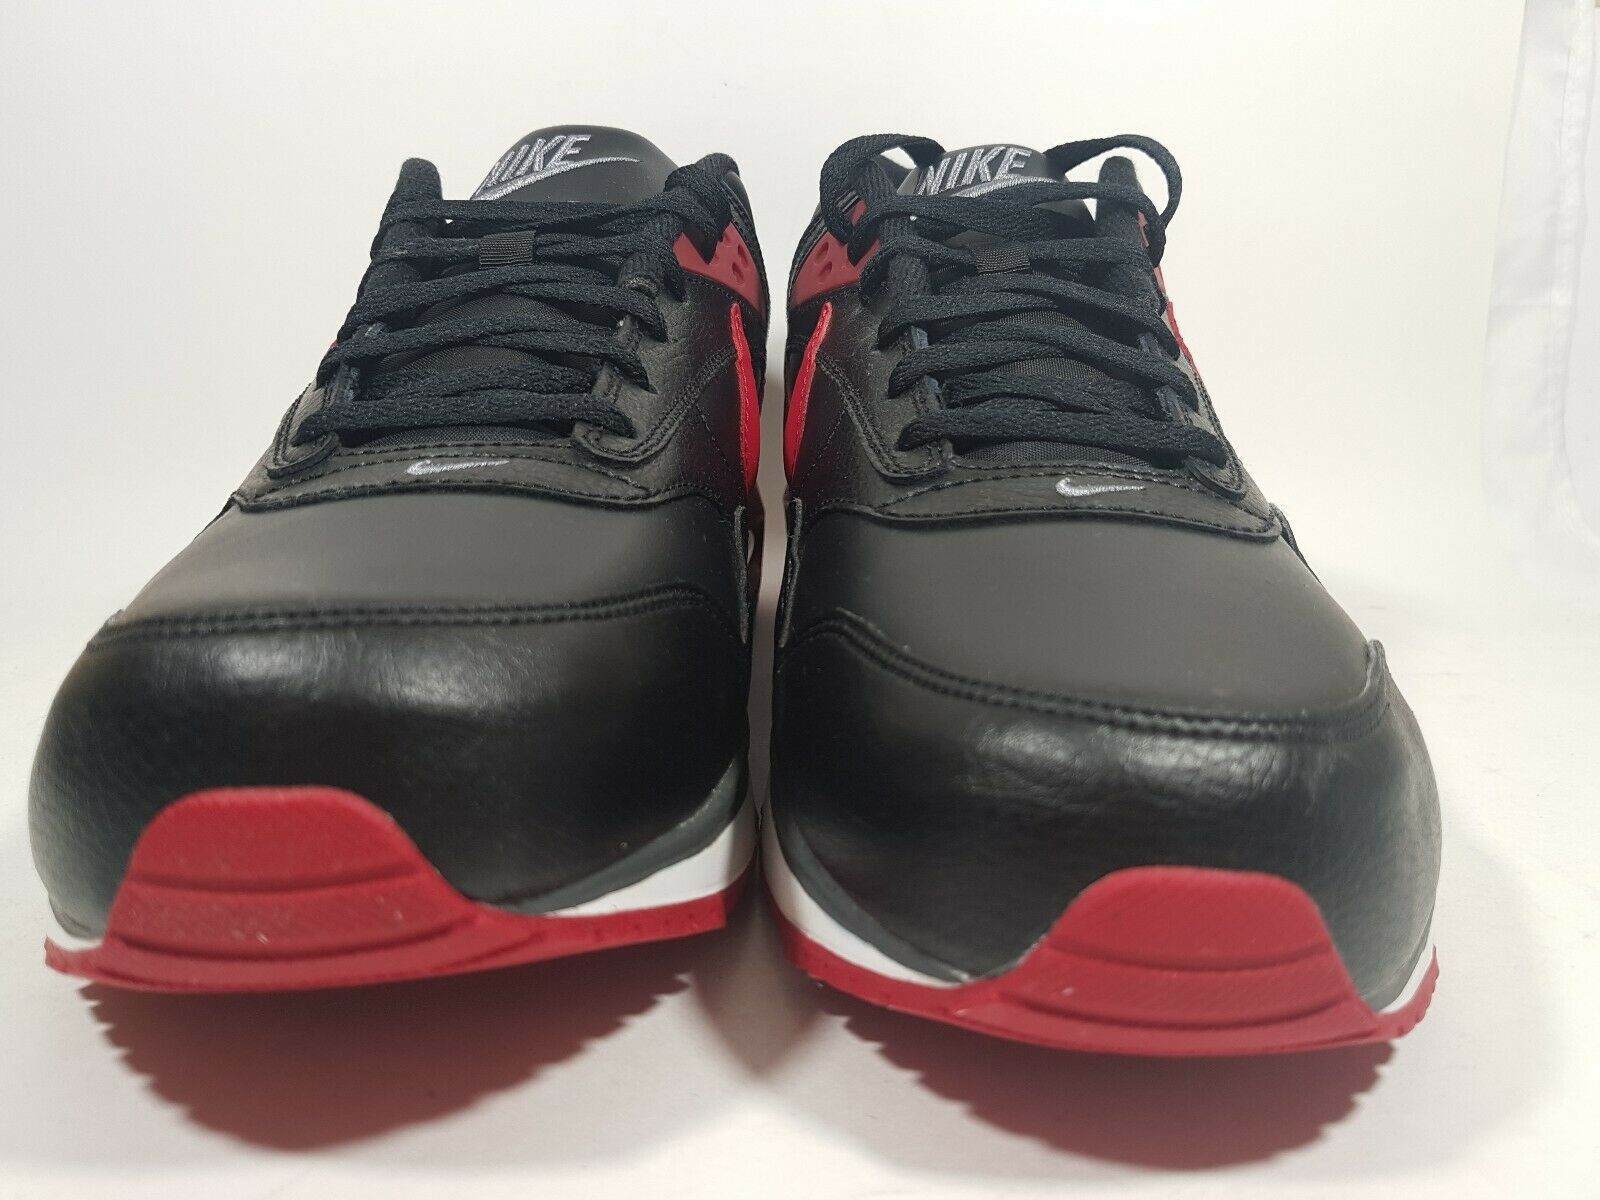 New Nike Air MAx Correlate Leather Running Black 518292 060 Mens Shoes 13 Rare image 3